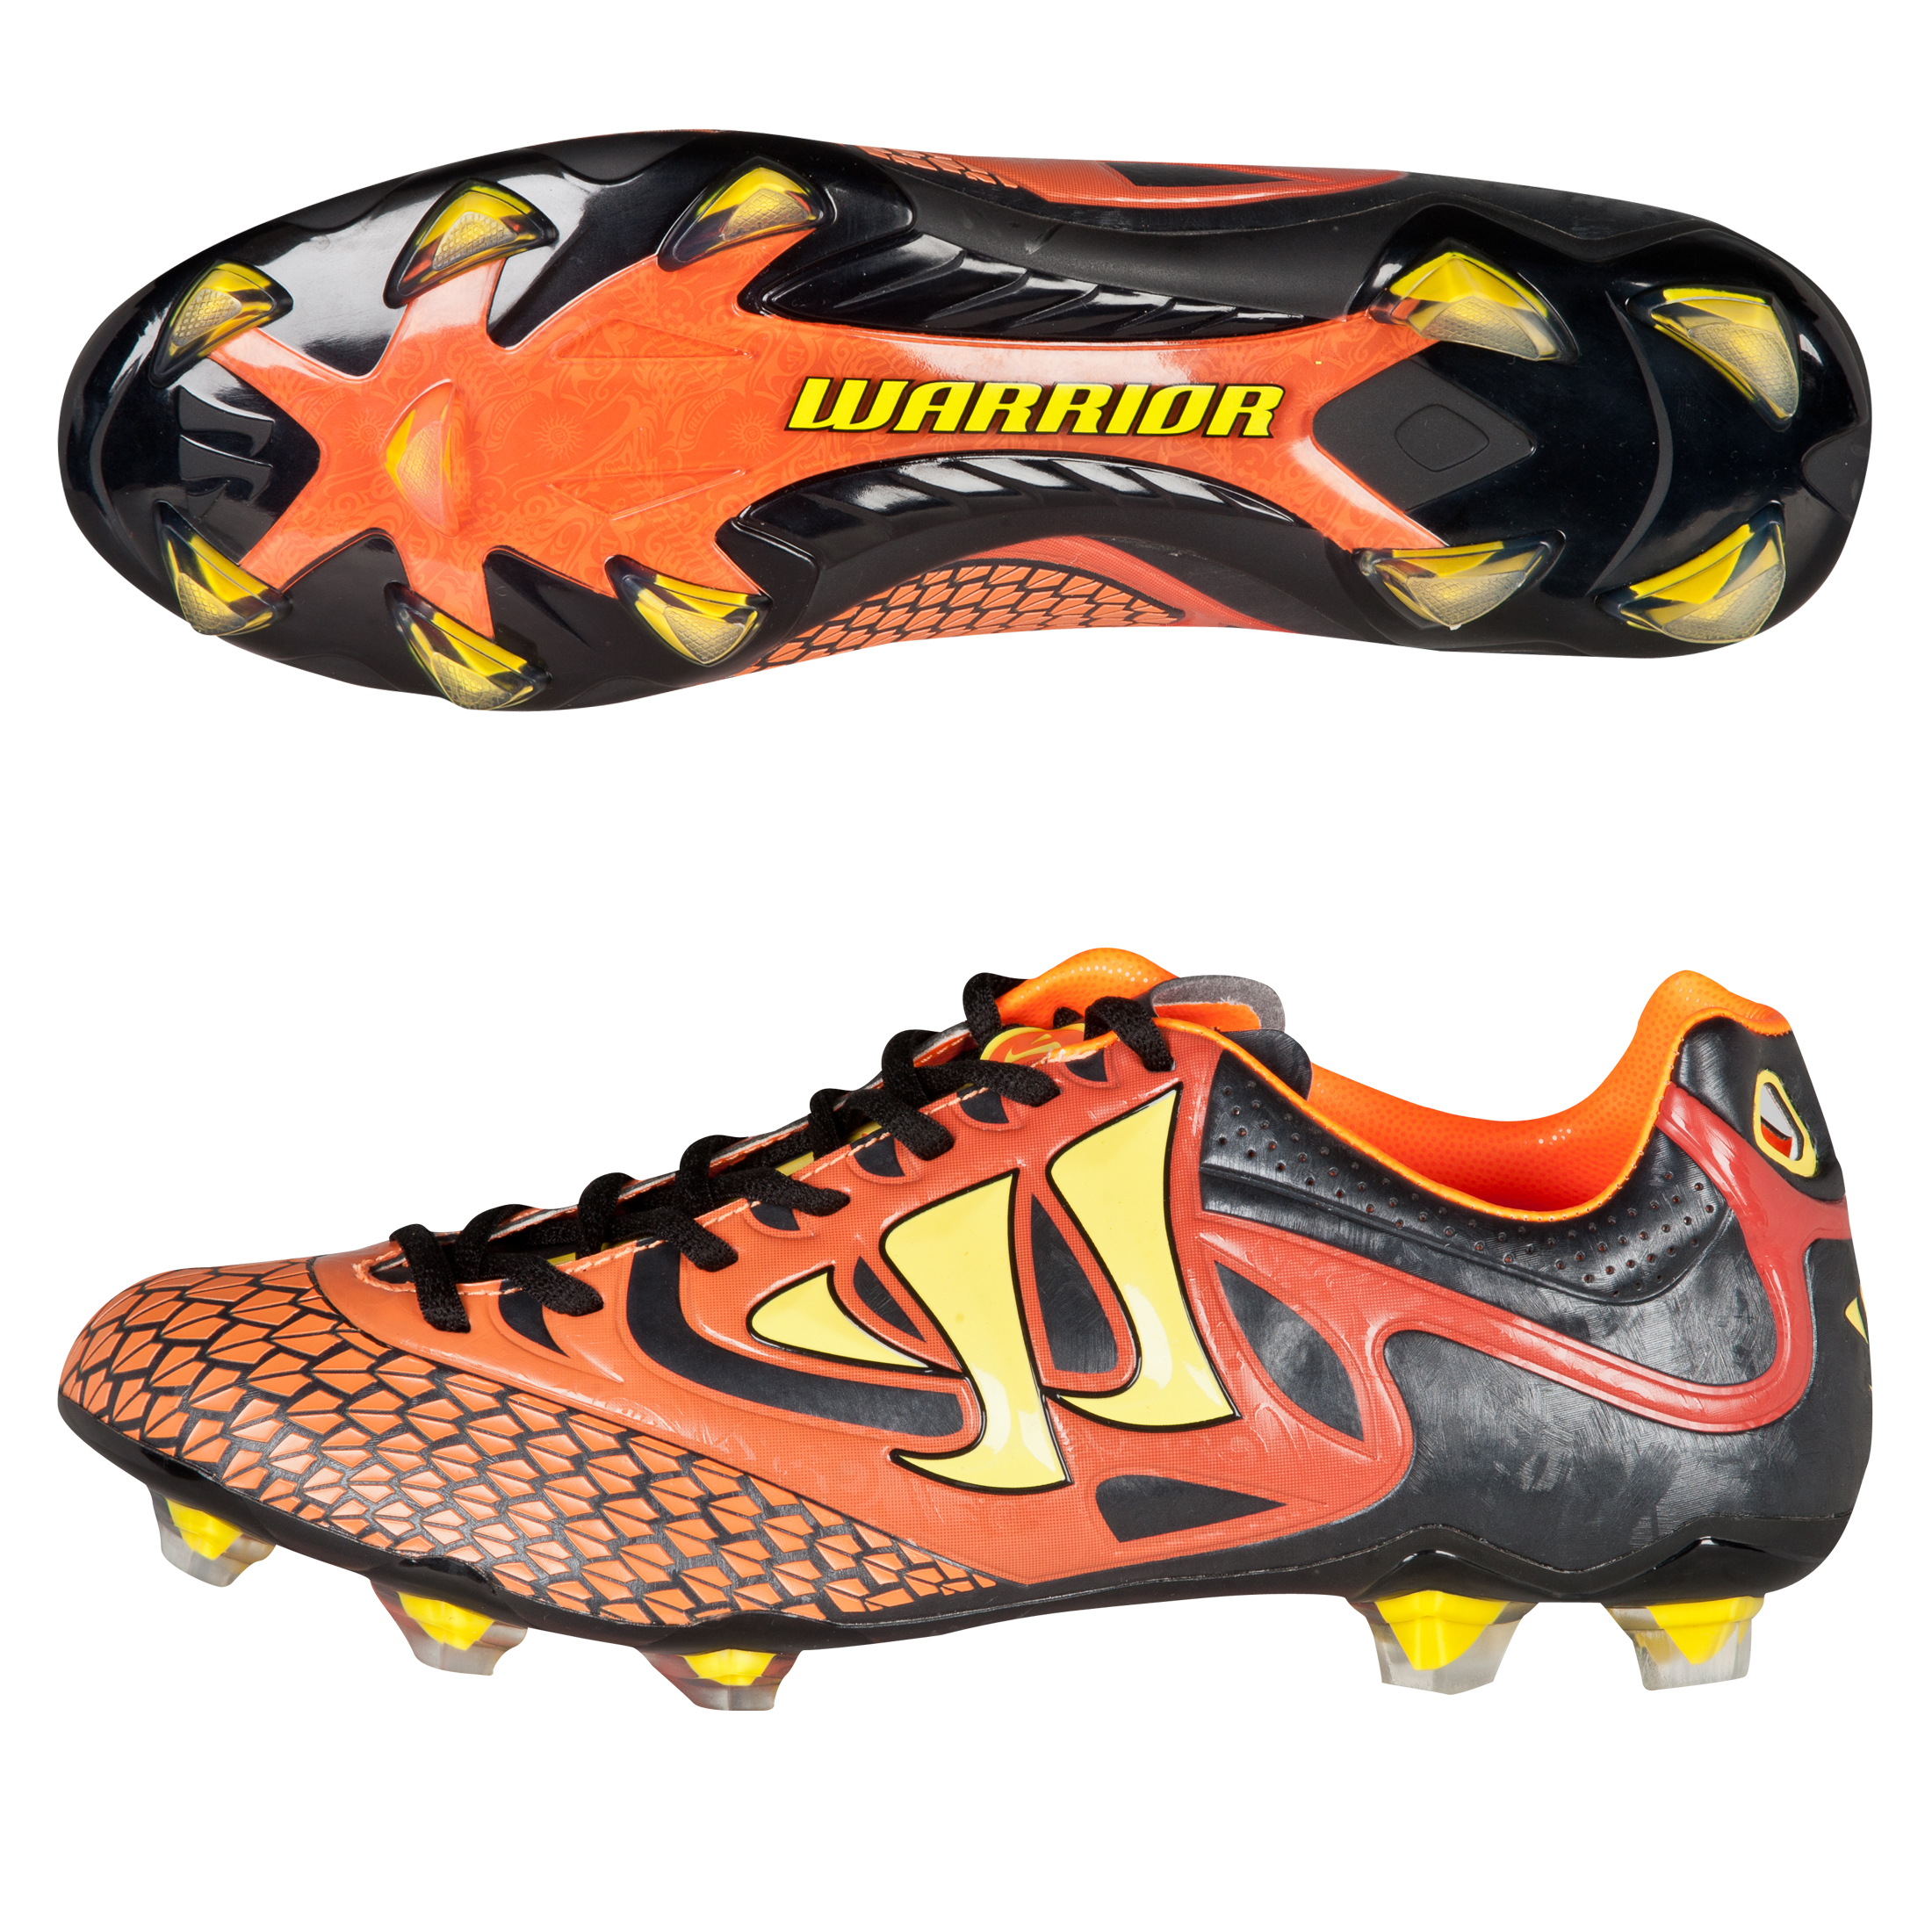 Warrior Sports Skreamer Combat Firm Ground Football Boots-Ebony/Orange/Yellow Black